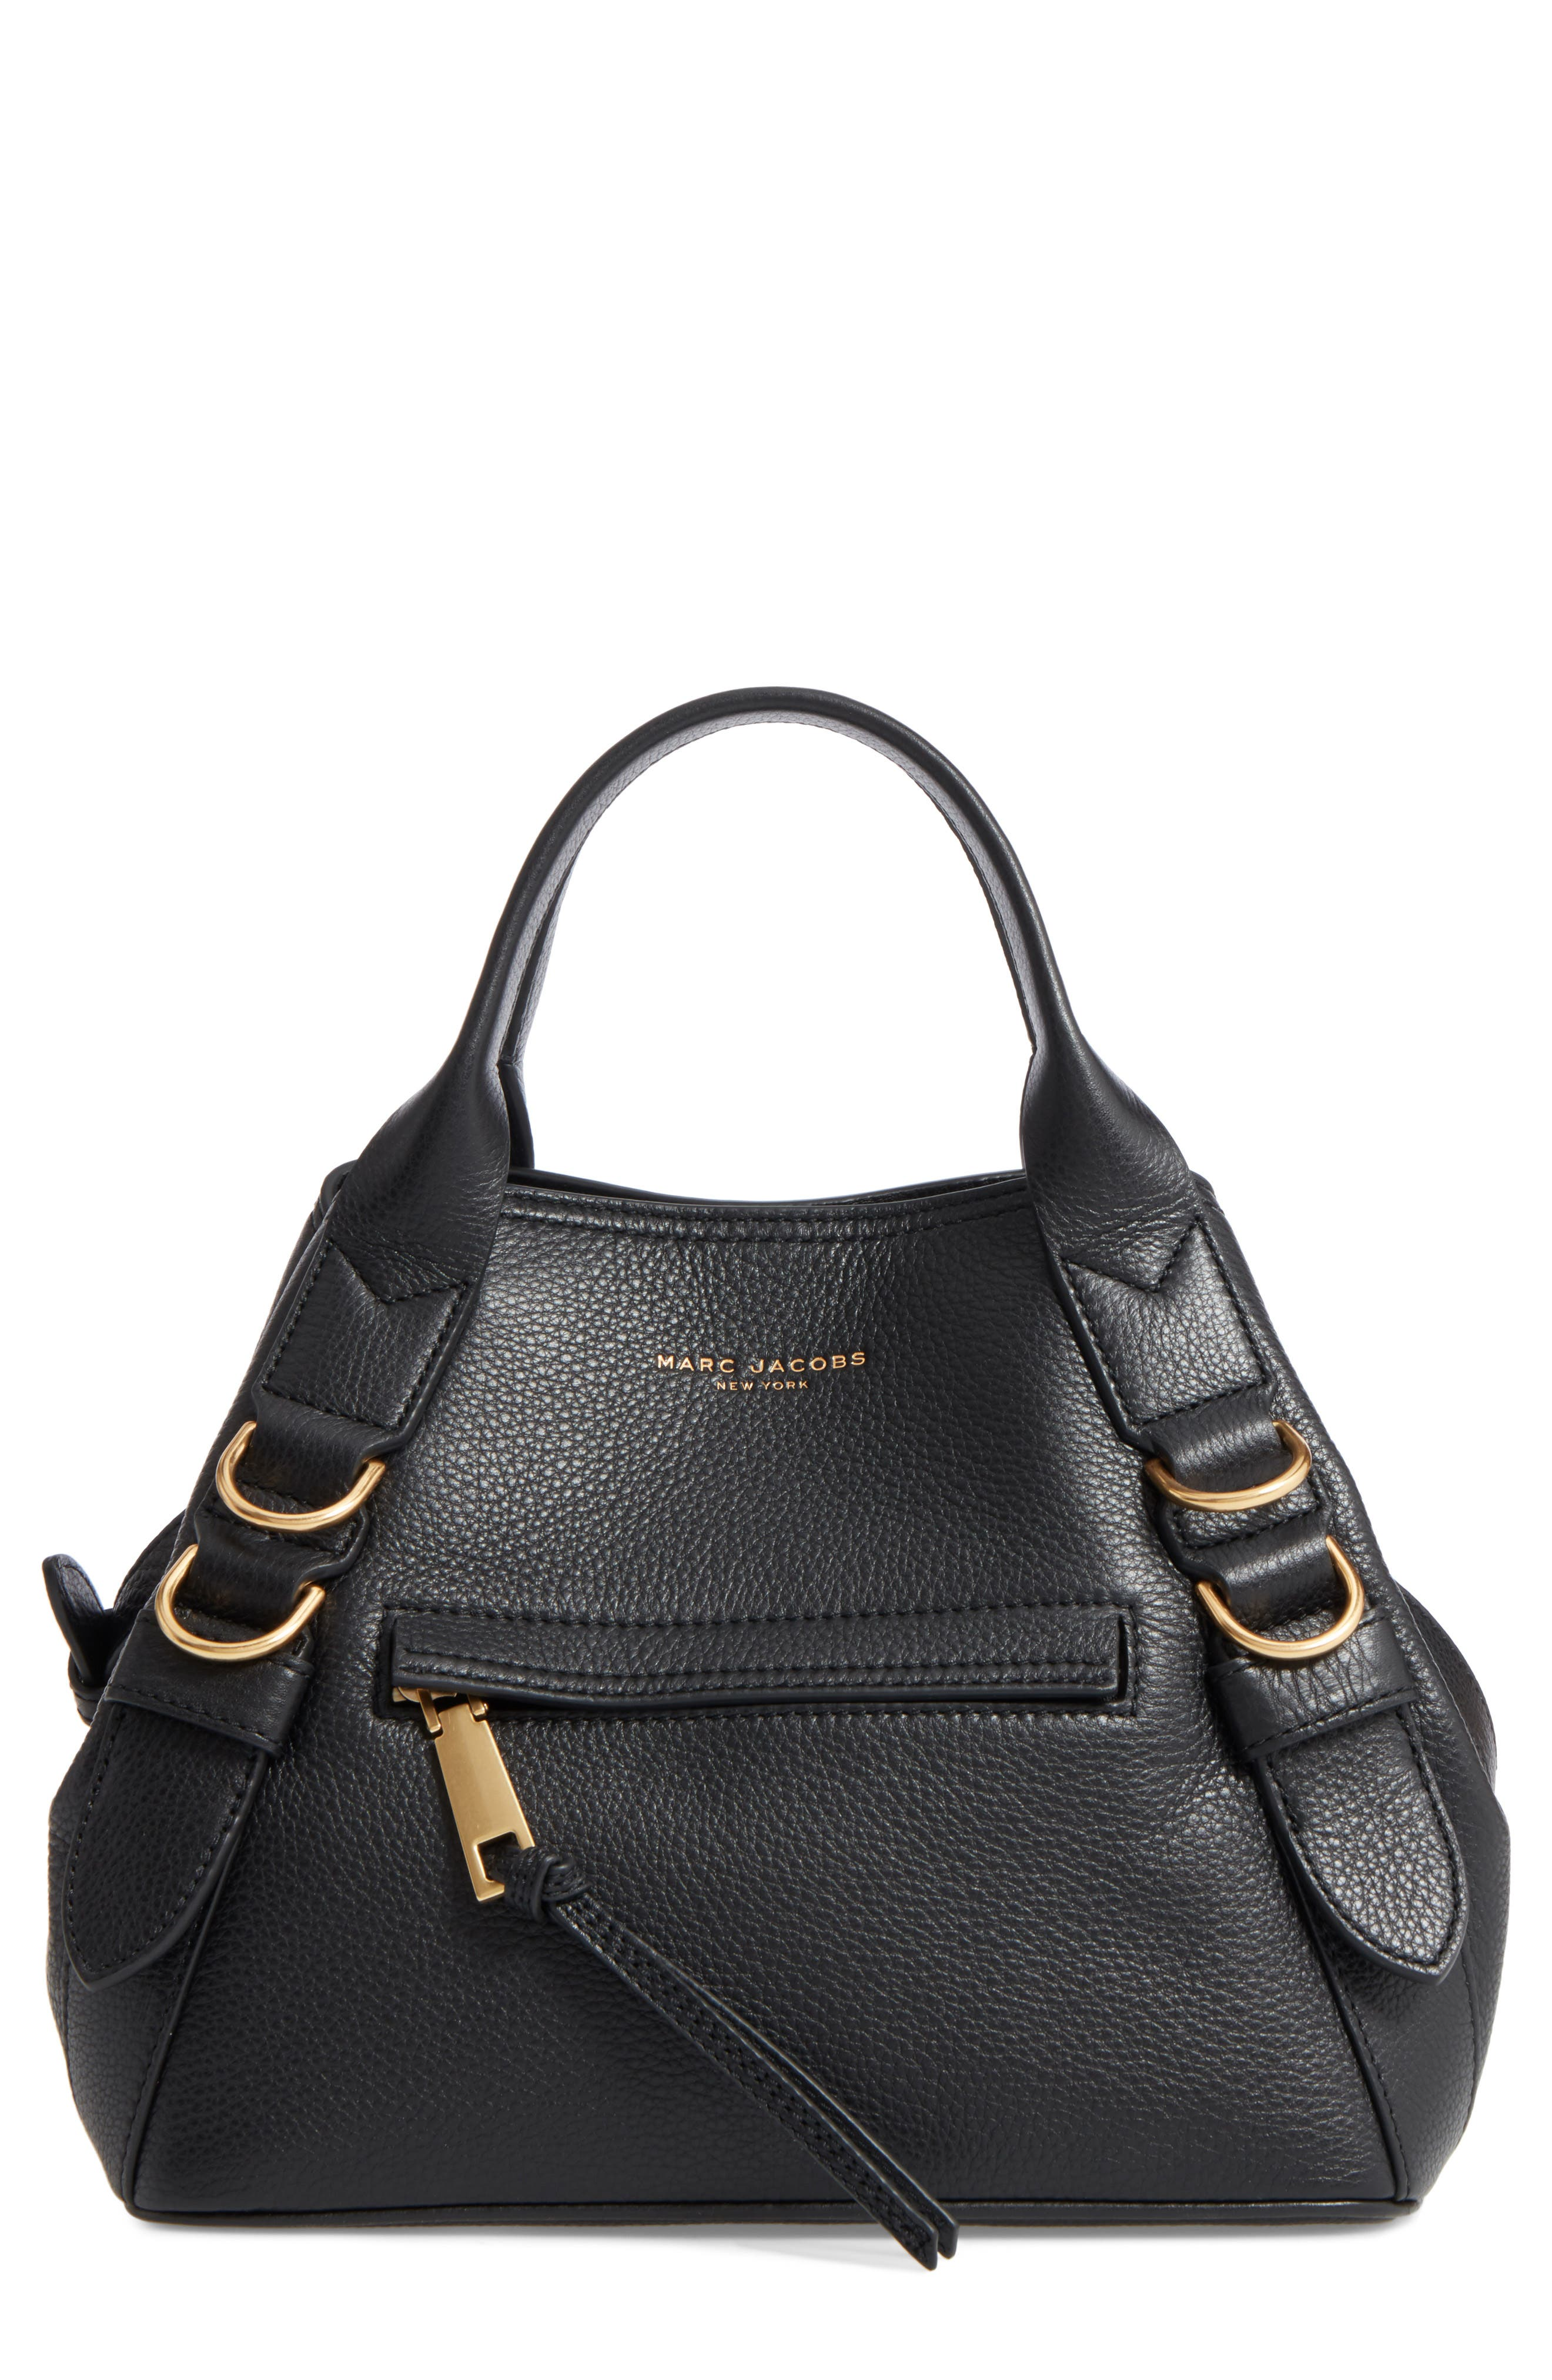 MARC JACOBS The Small Anchor Leather Shoulder Bag, Main, color, 001